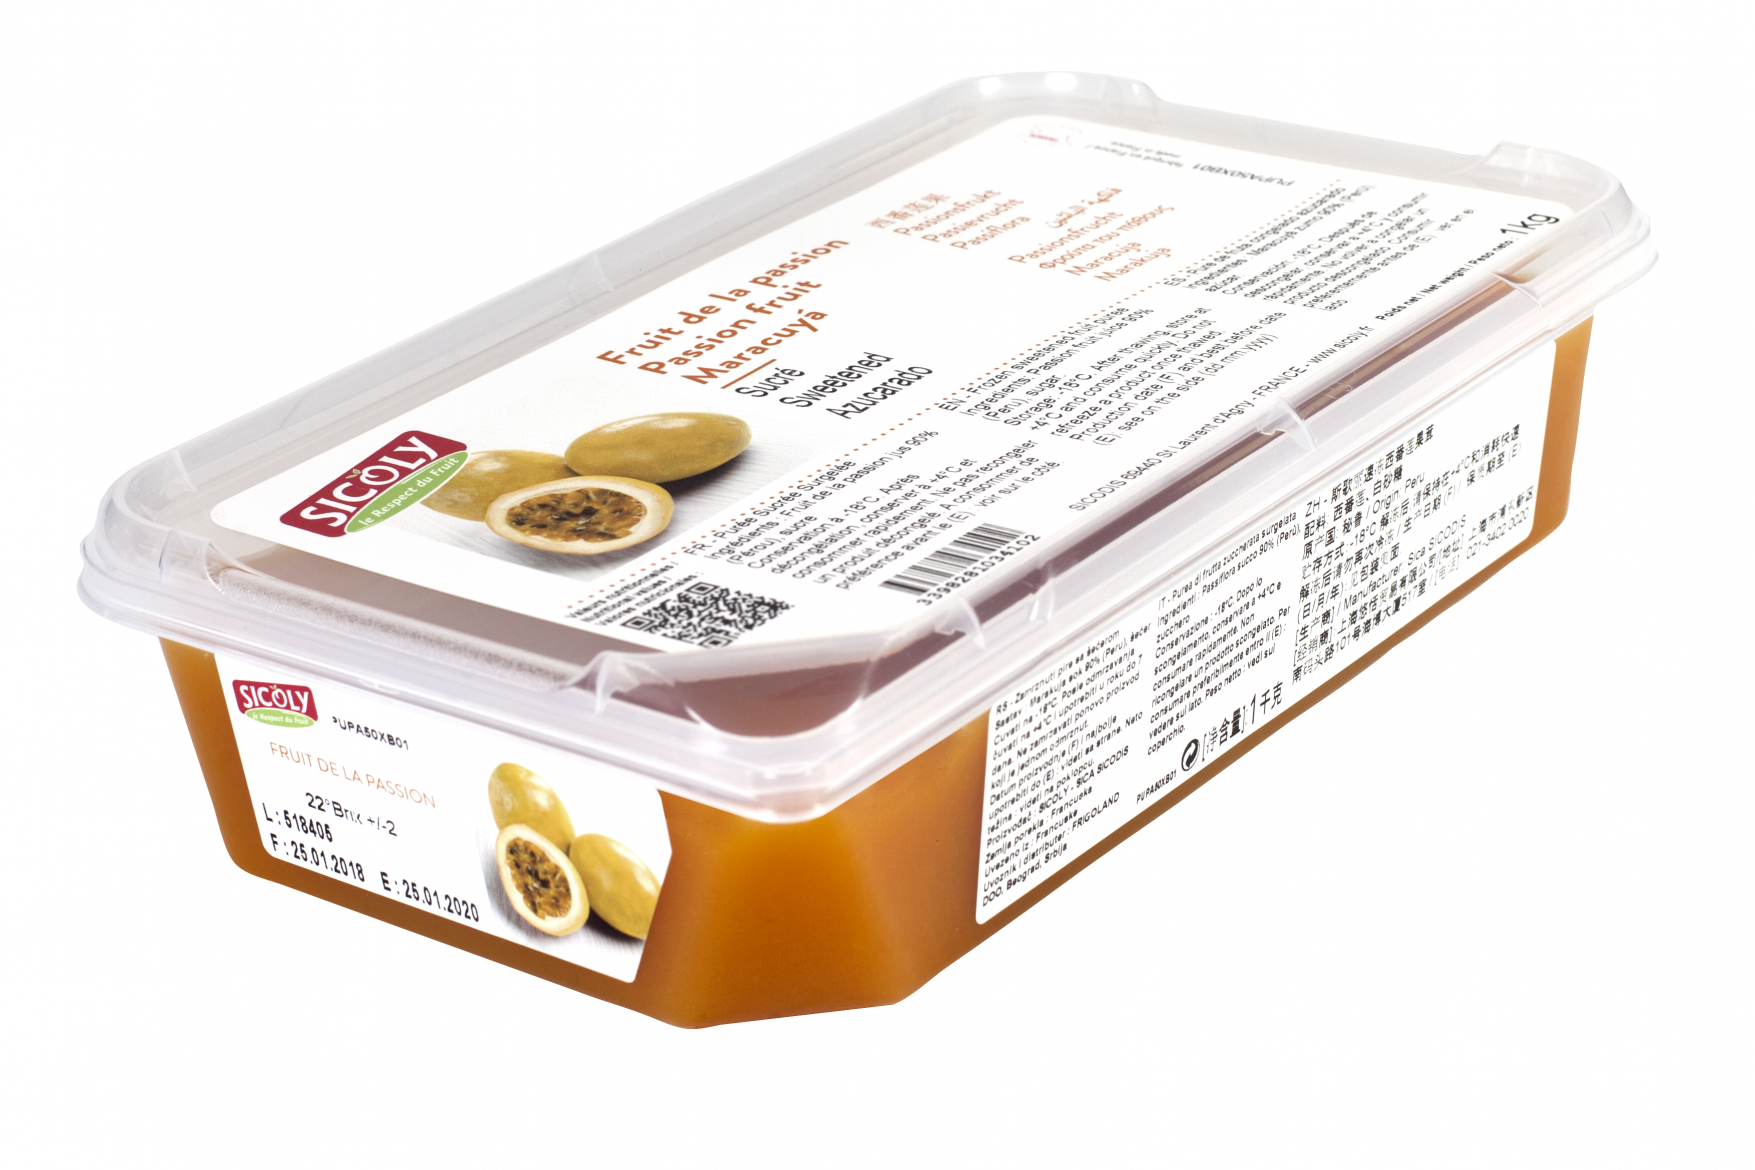 Sicoly product image Sweetened passion fruit purée